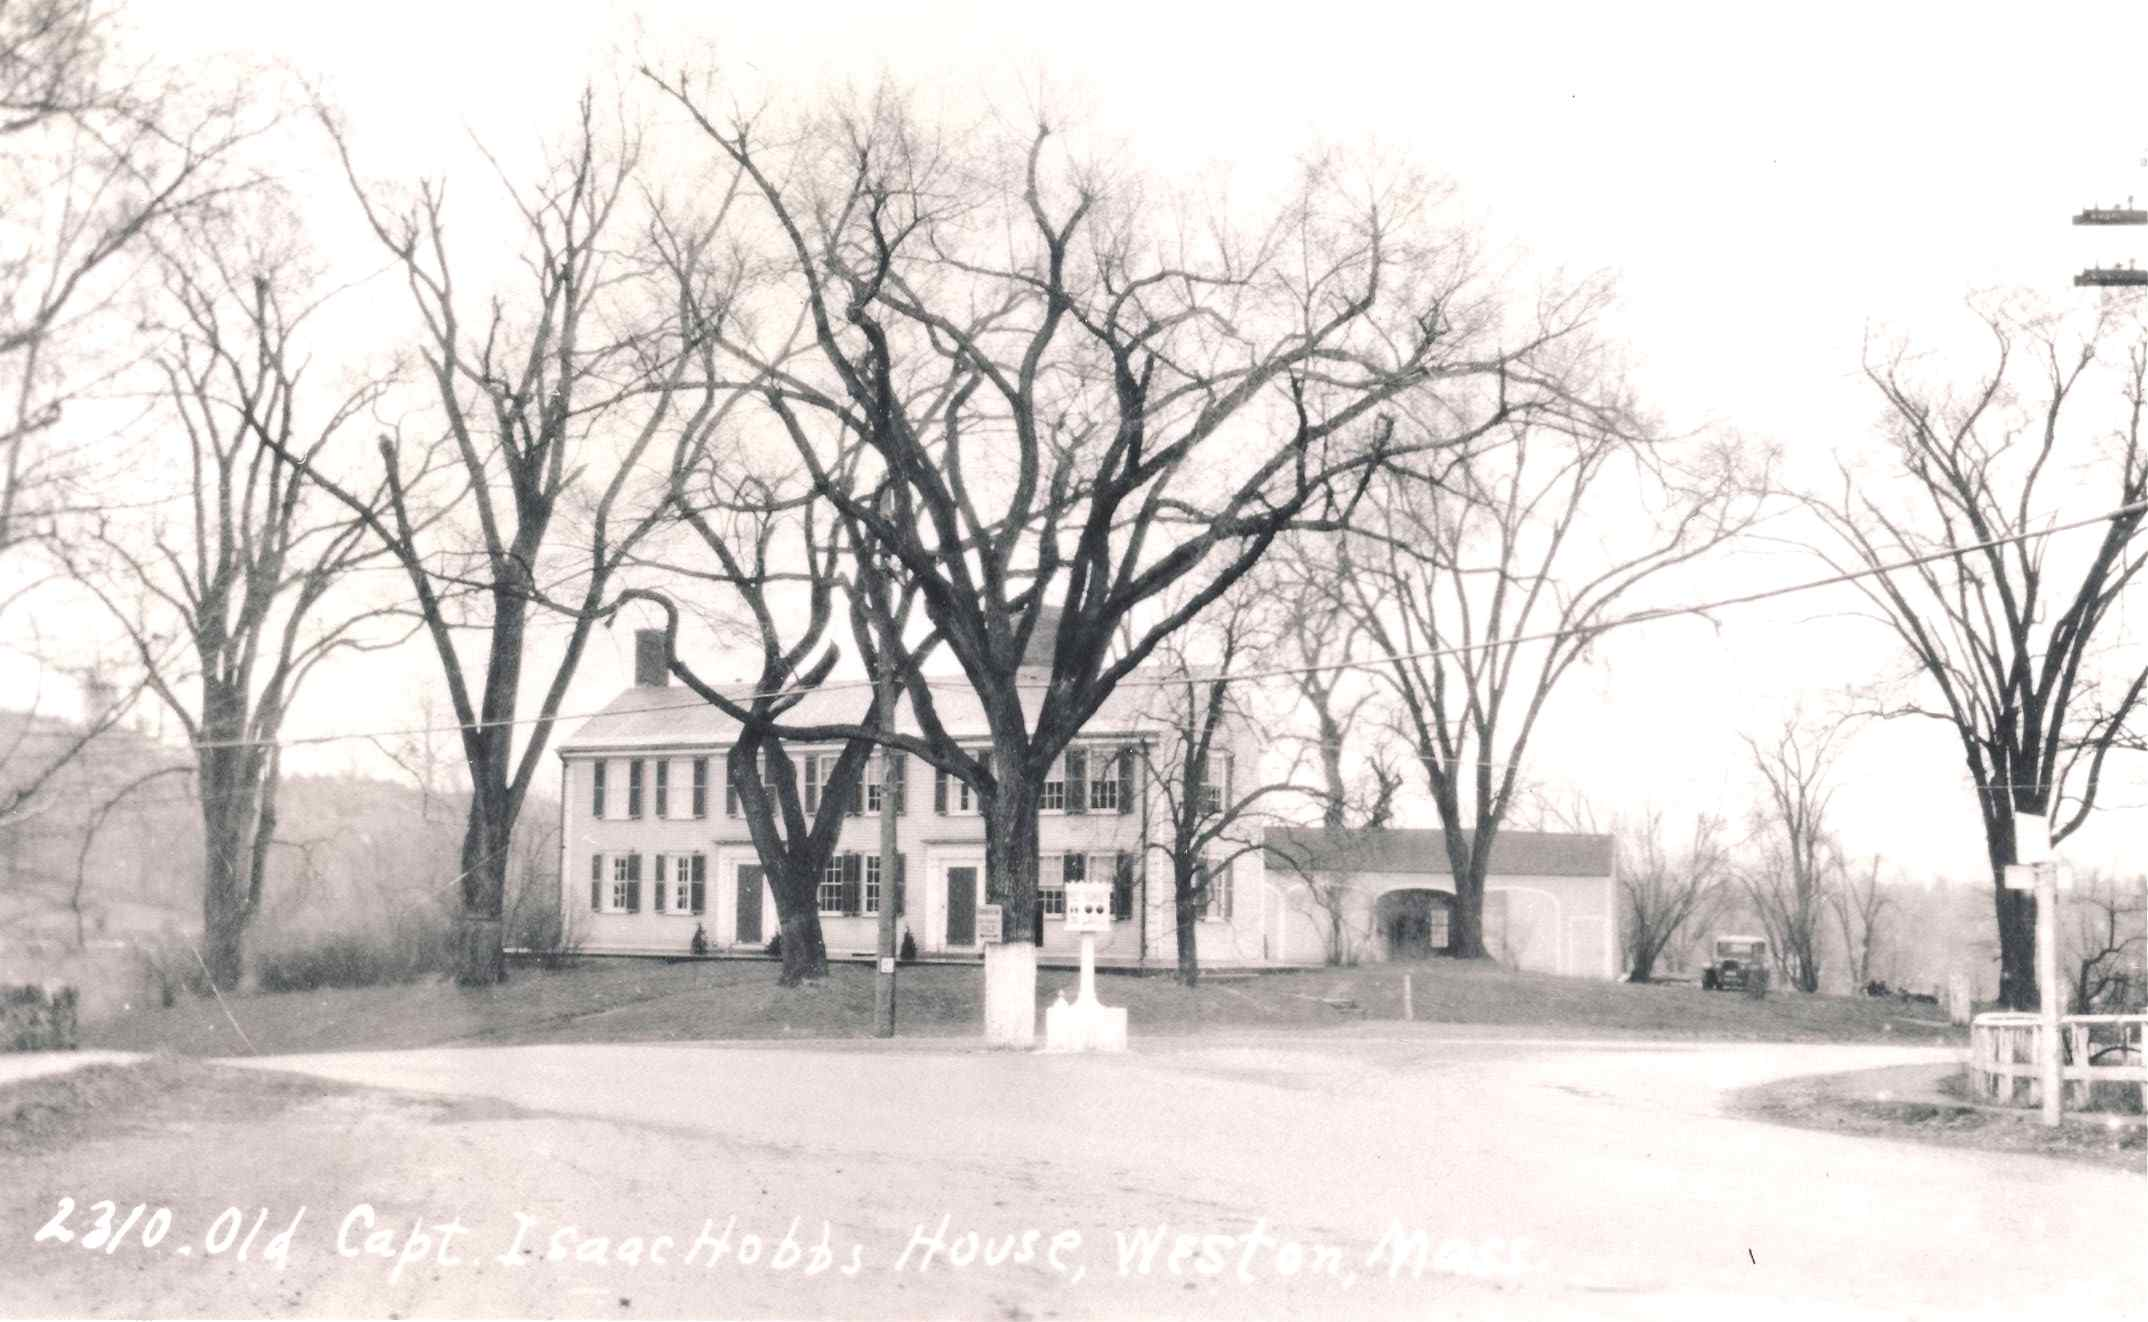 Photograph of the Hobbs-Hagar House at 88 North Avenue and elms